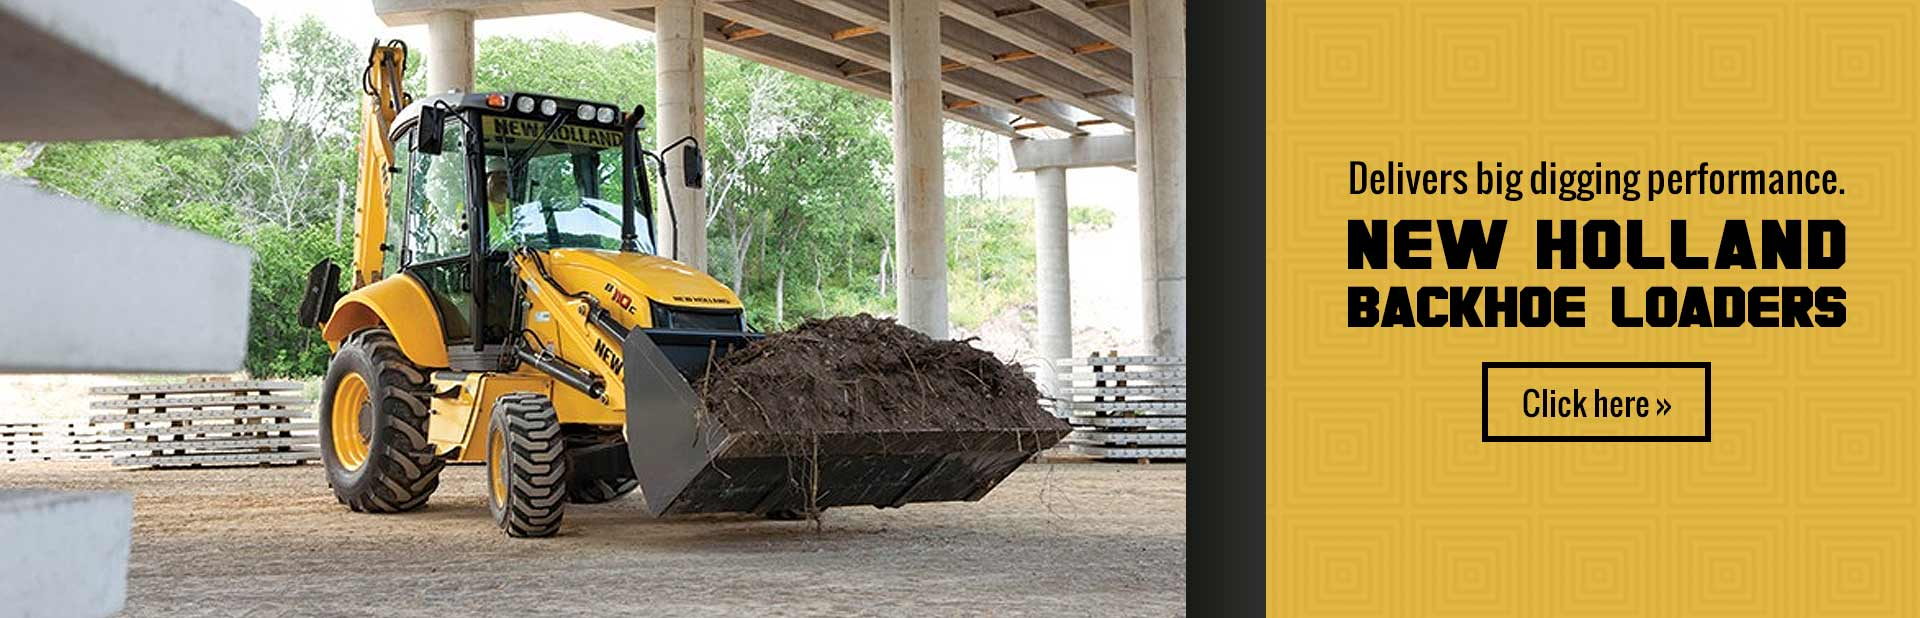 Click here to view our selection of New Holland backhoe loaders!